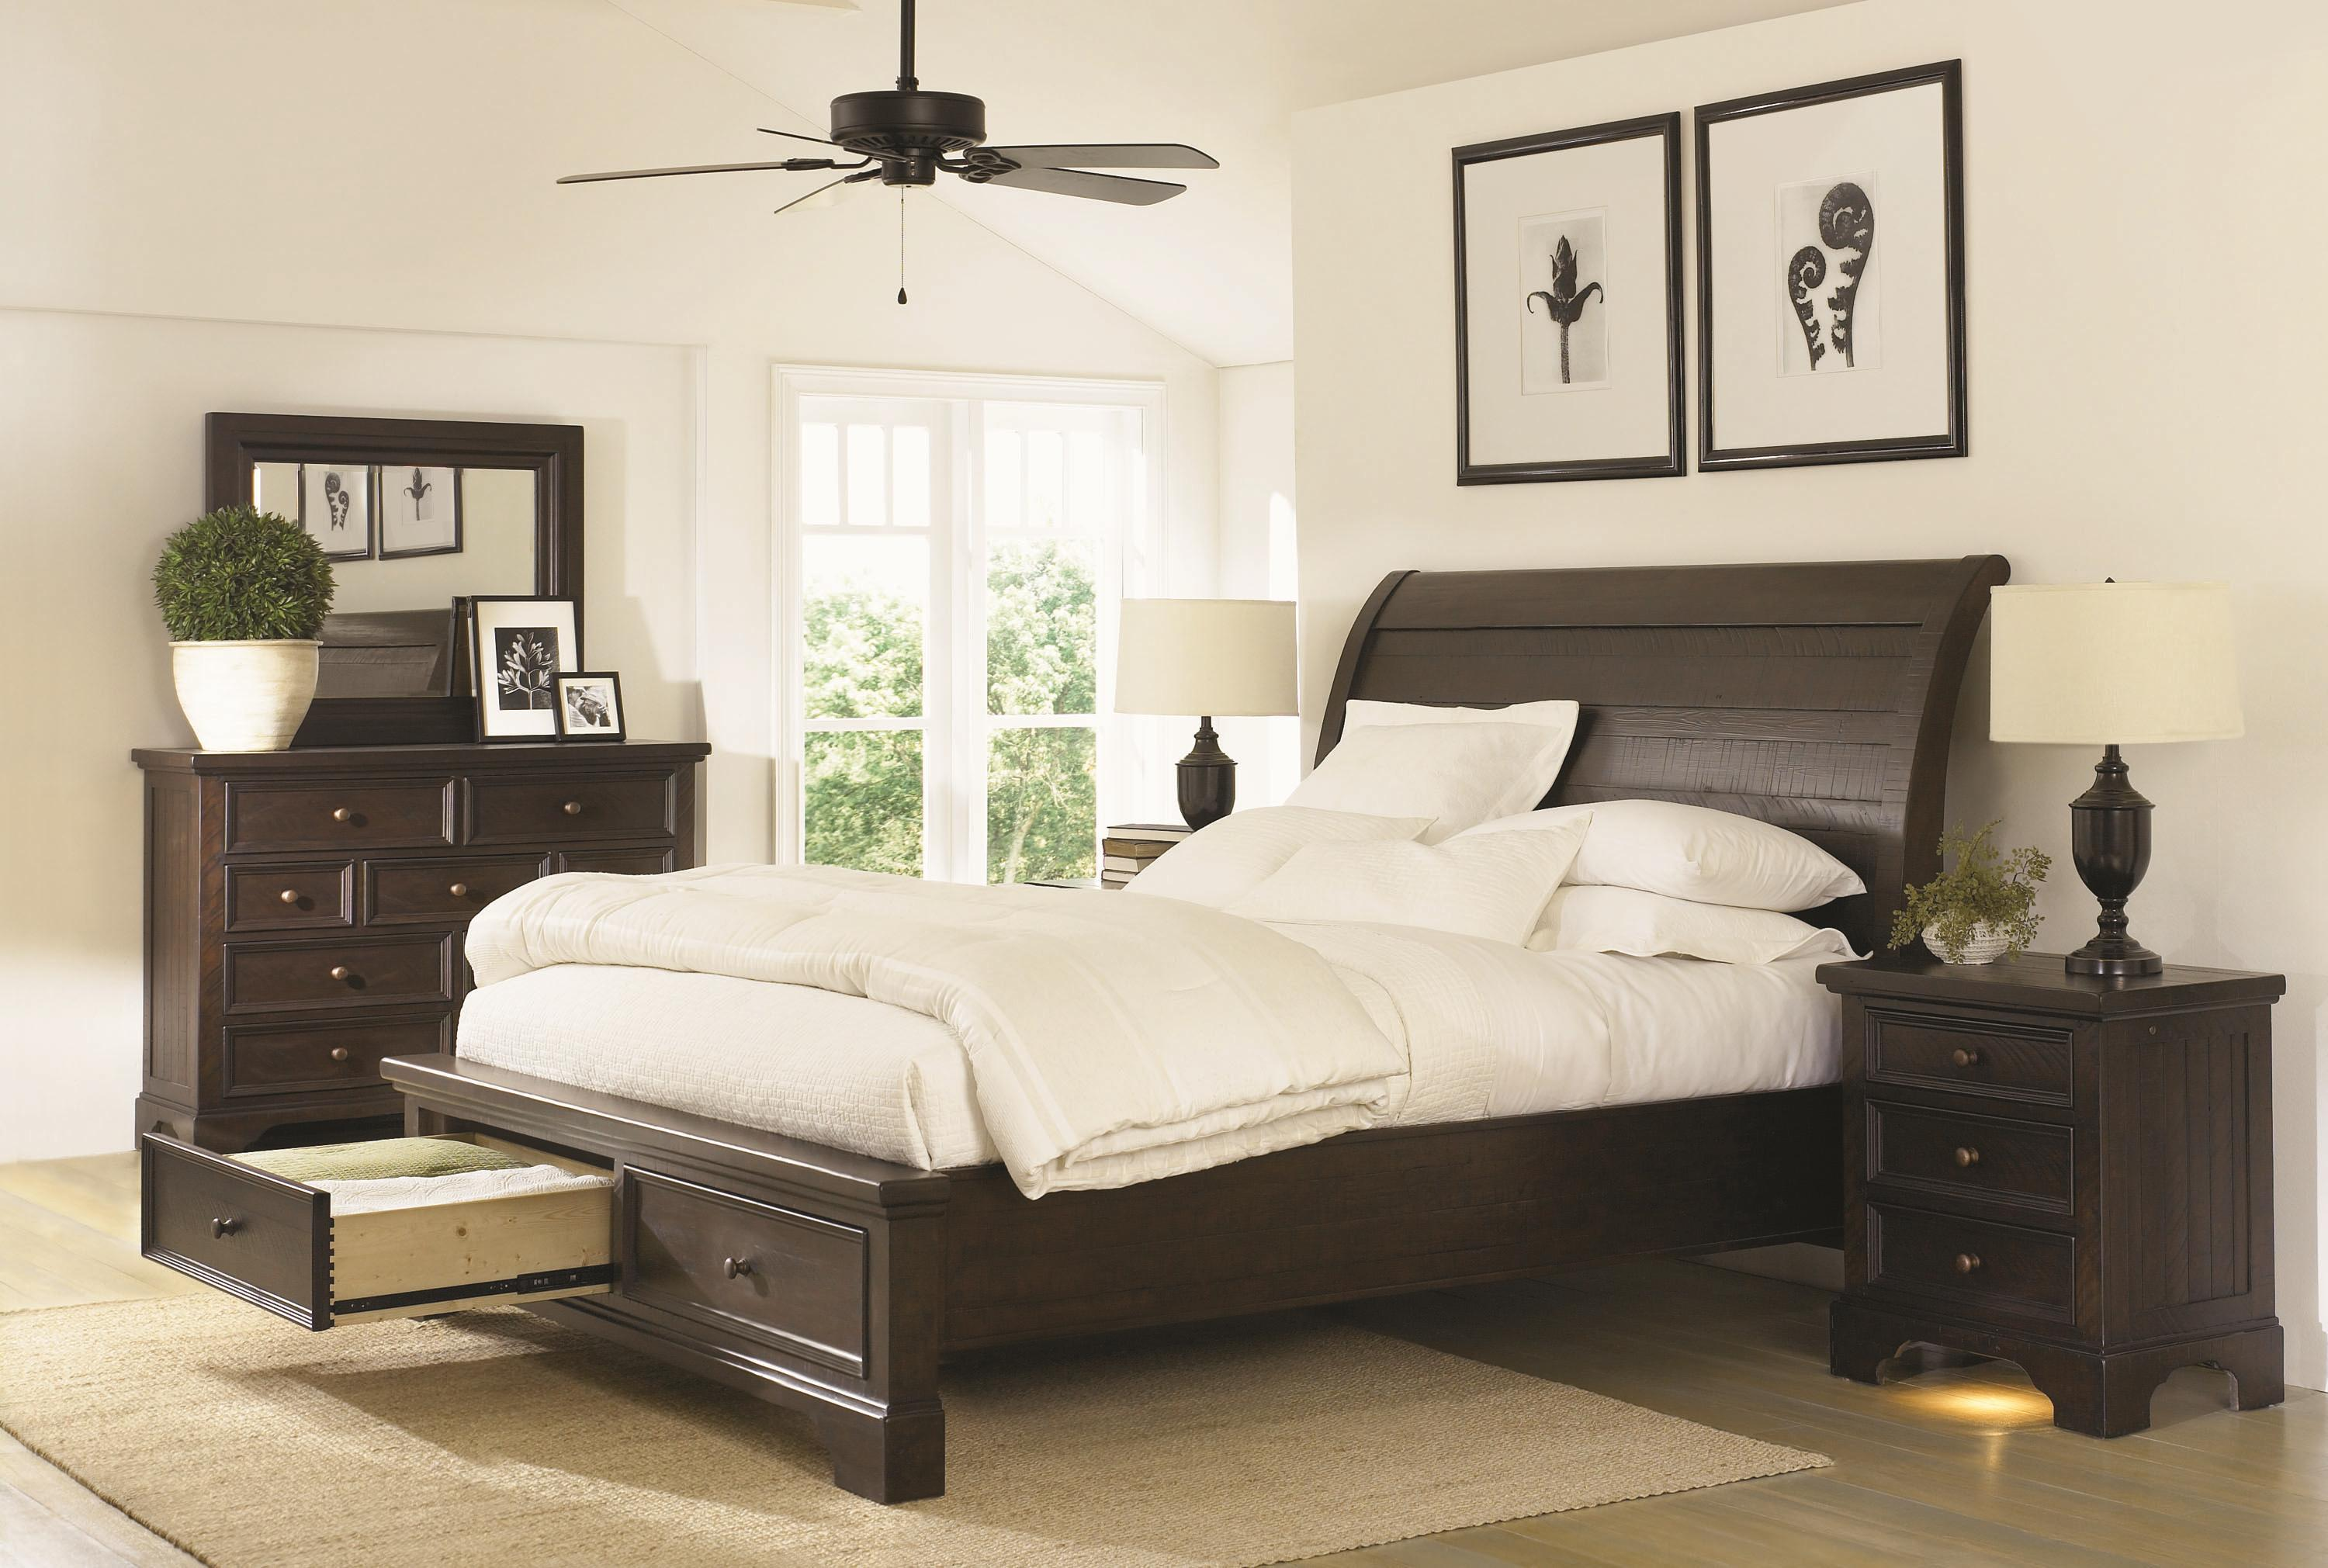 Aspenhome Bayfield King Bedroom Group - Item Number: I70 K Bedroom Group 2